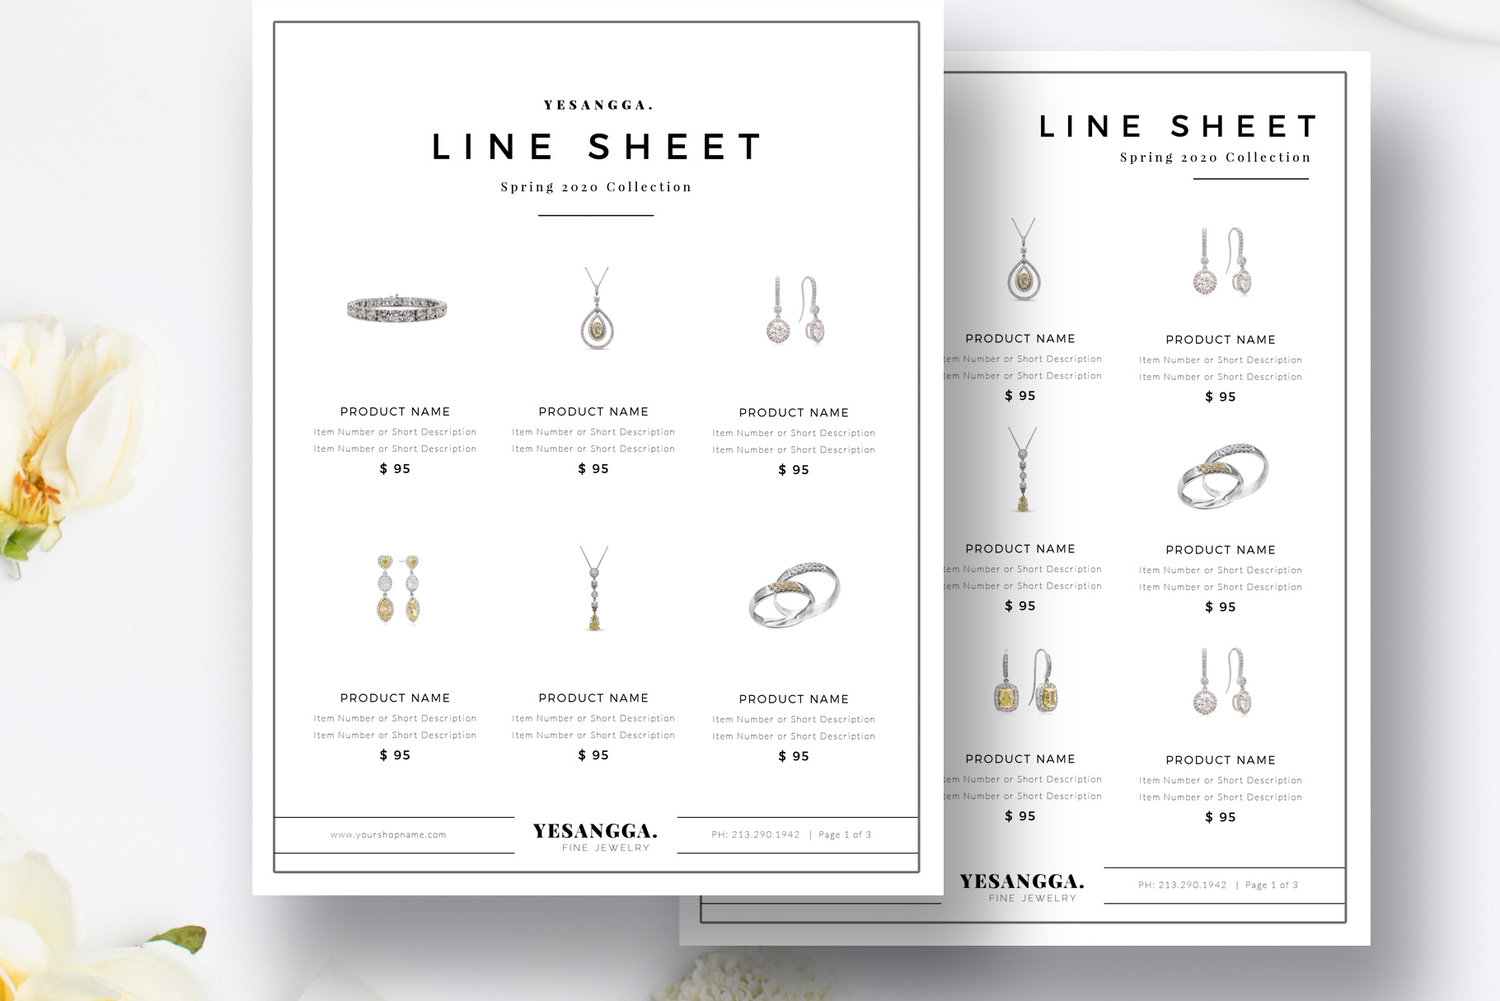 Minimalist Product Line Sheet Templates 4 Layouts Product Sales Sheet Photoshop Indesign Ms Word By Stephanie Design